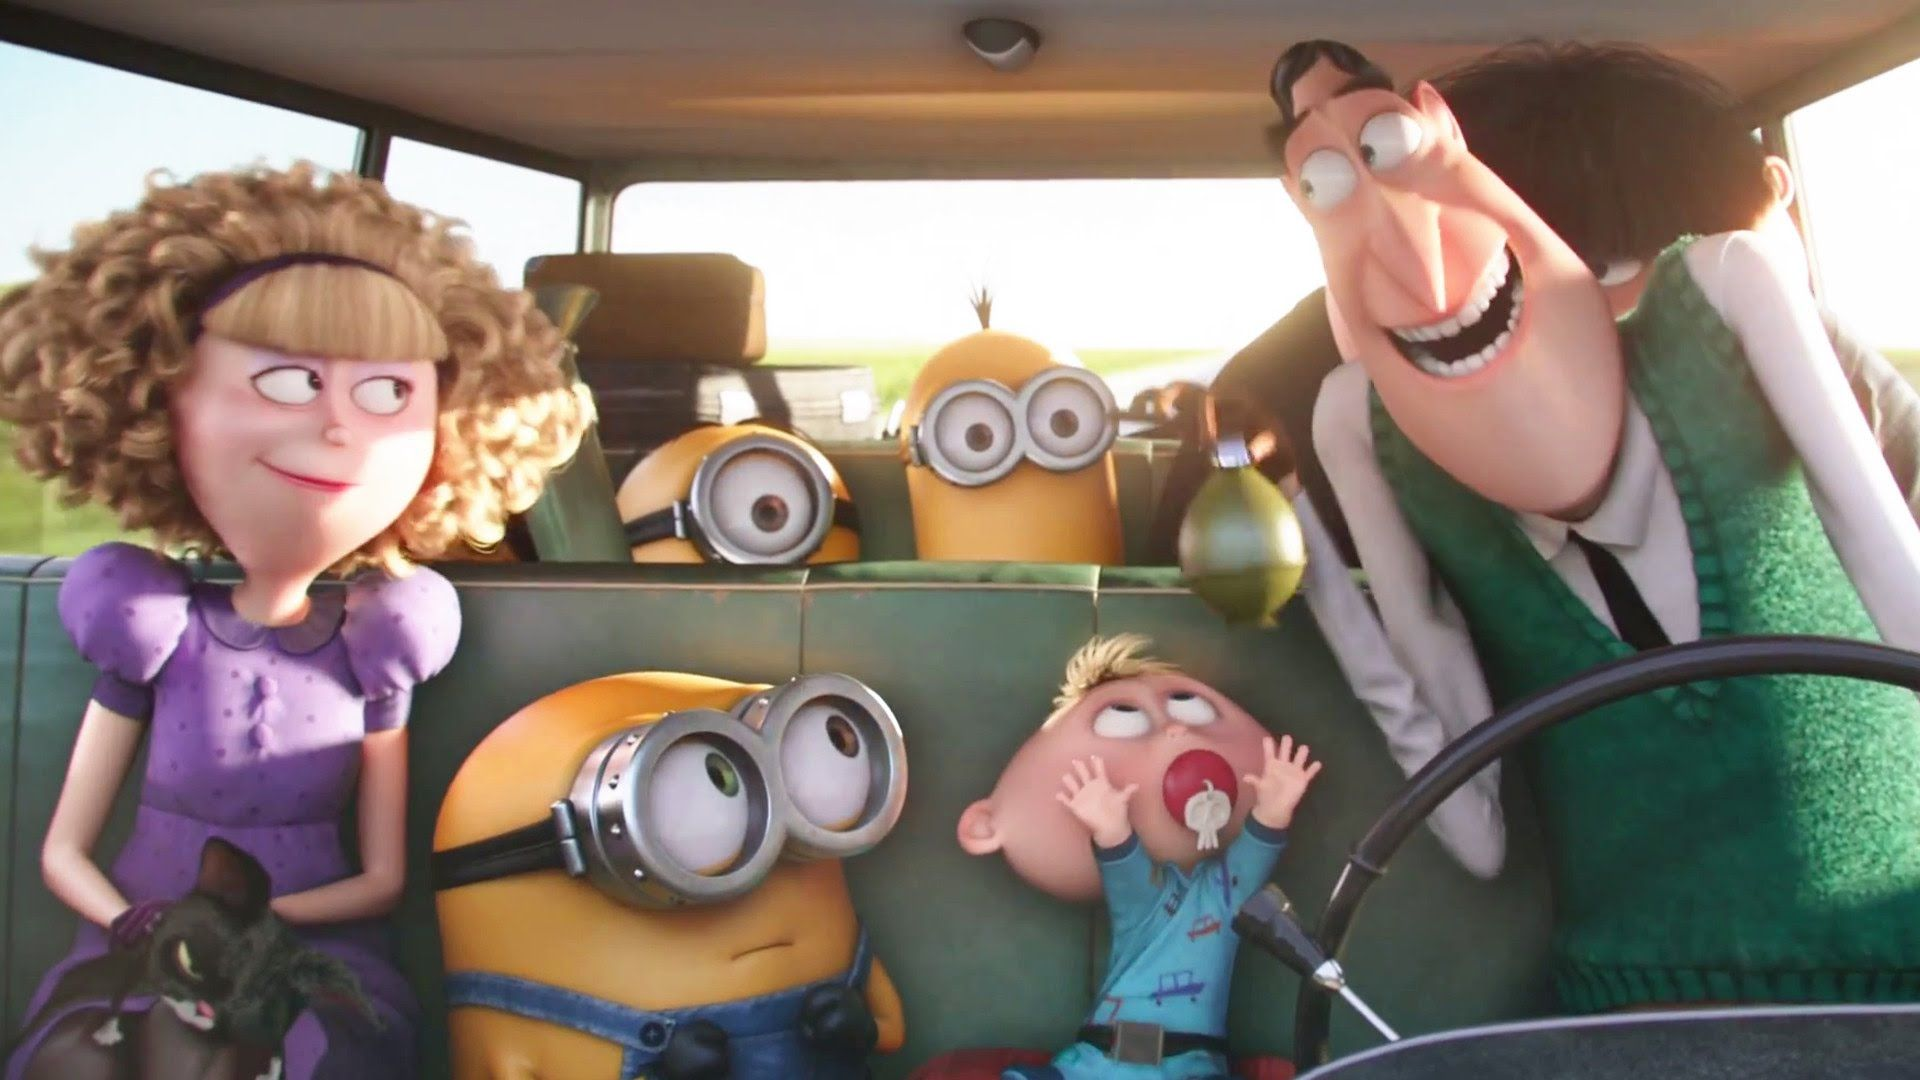 Minions going to villain con clip 2015 despicable me spinoff minions going to villain con clip 2015 despicable me spinoff biocorpaavc Choice Image